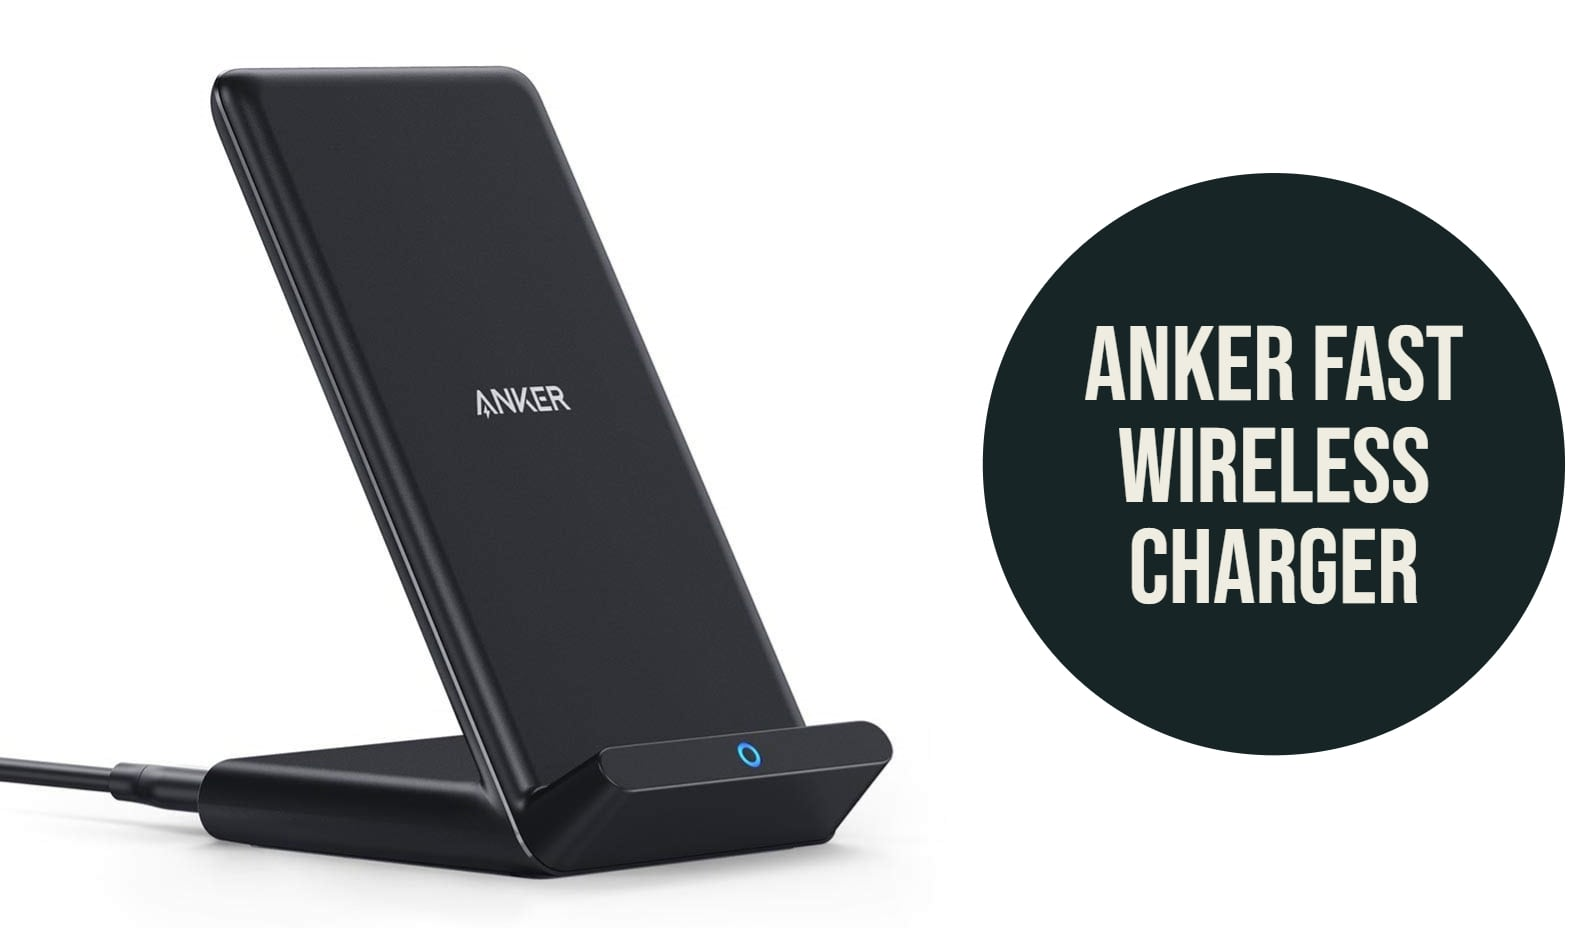 Anker Fast Wireless Charger (2)